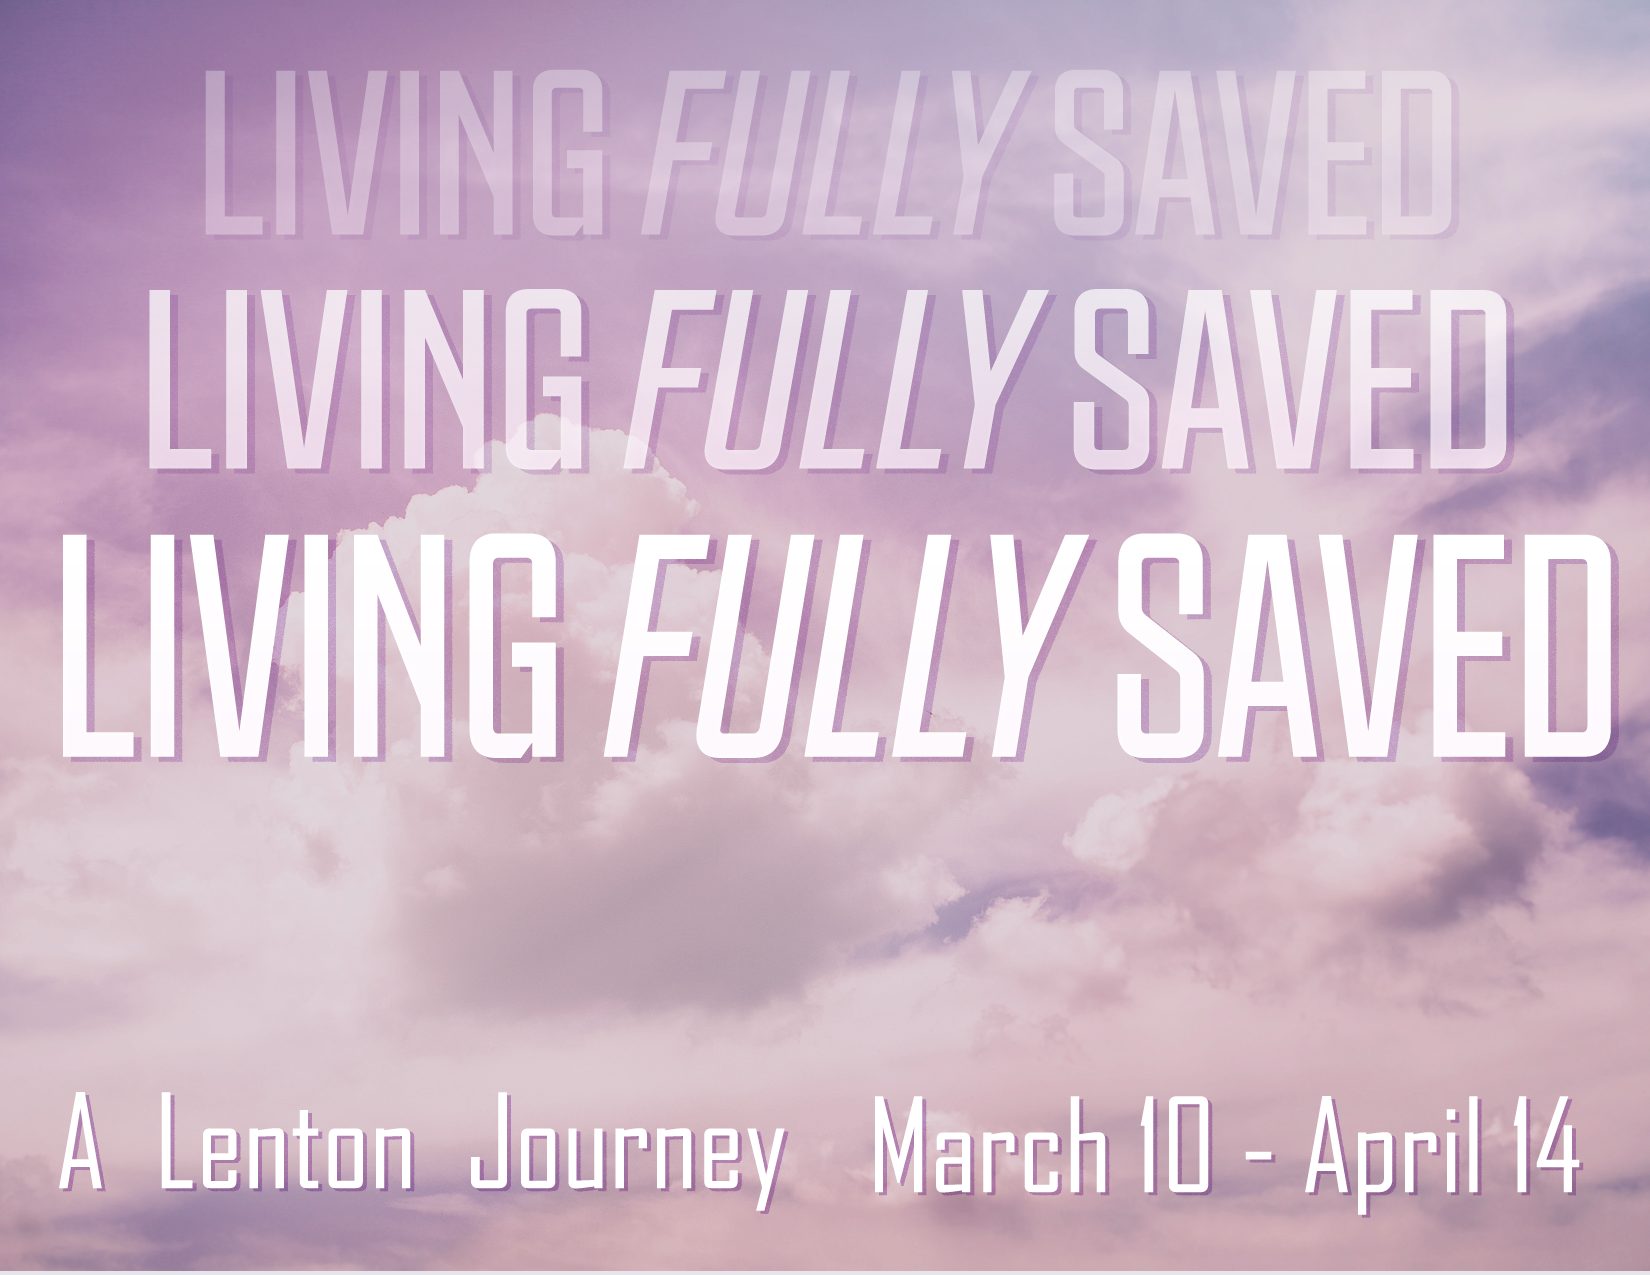 Living Fully Saved – Loving in Community